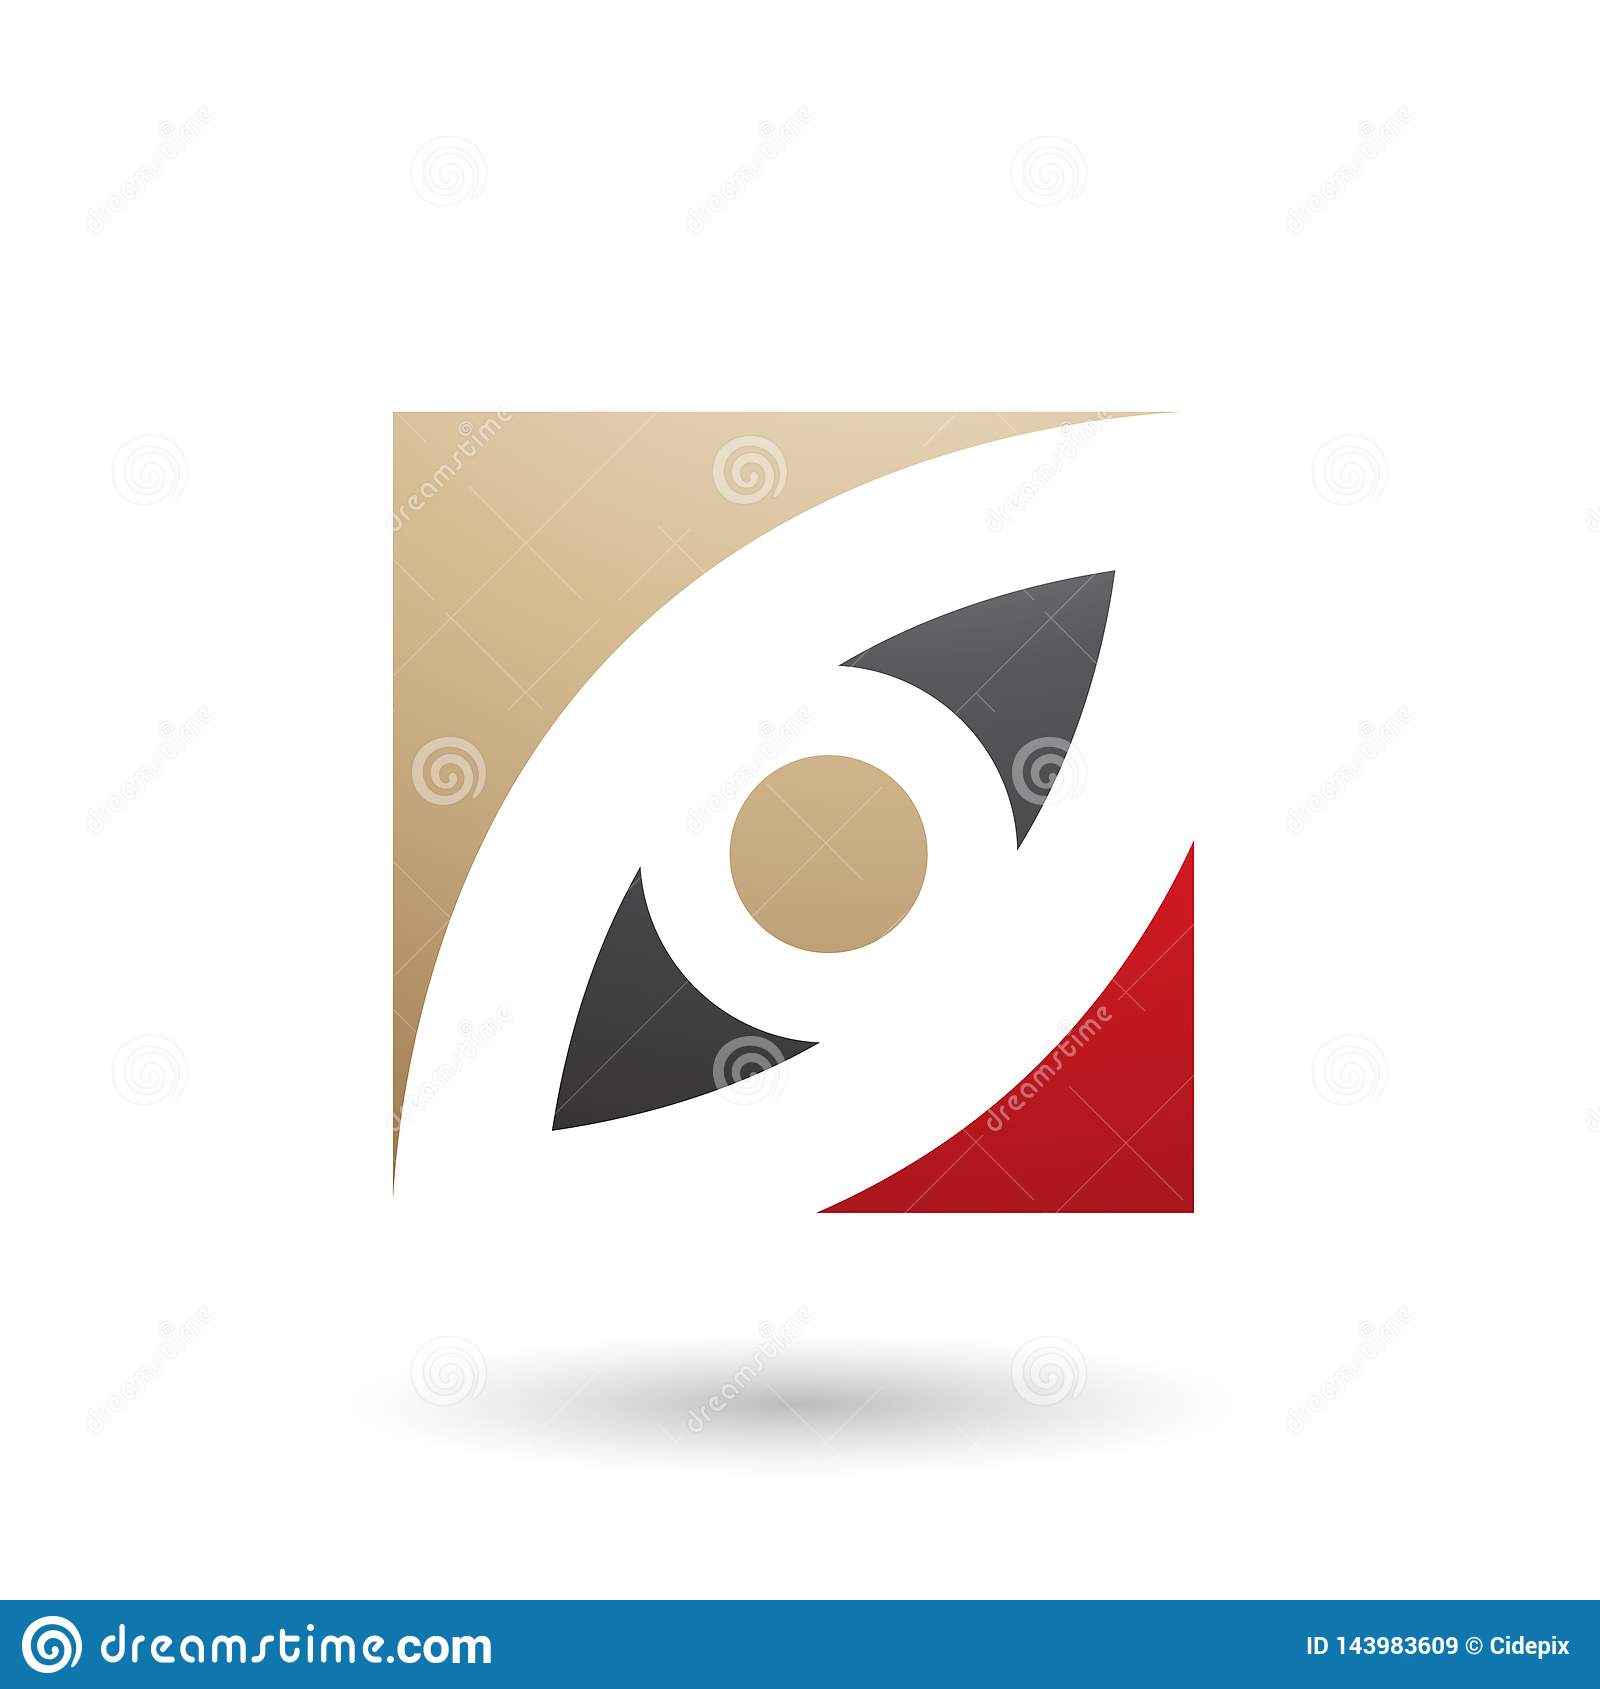 Beige Black and Red Eye Shaped Square Vector Illustration